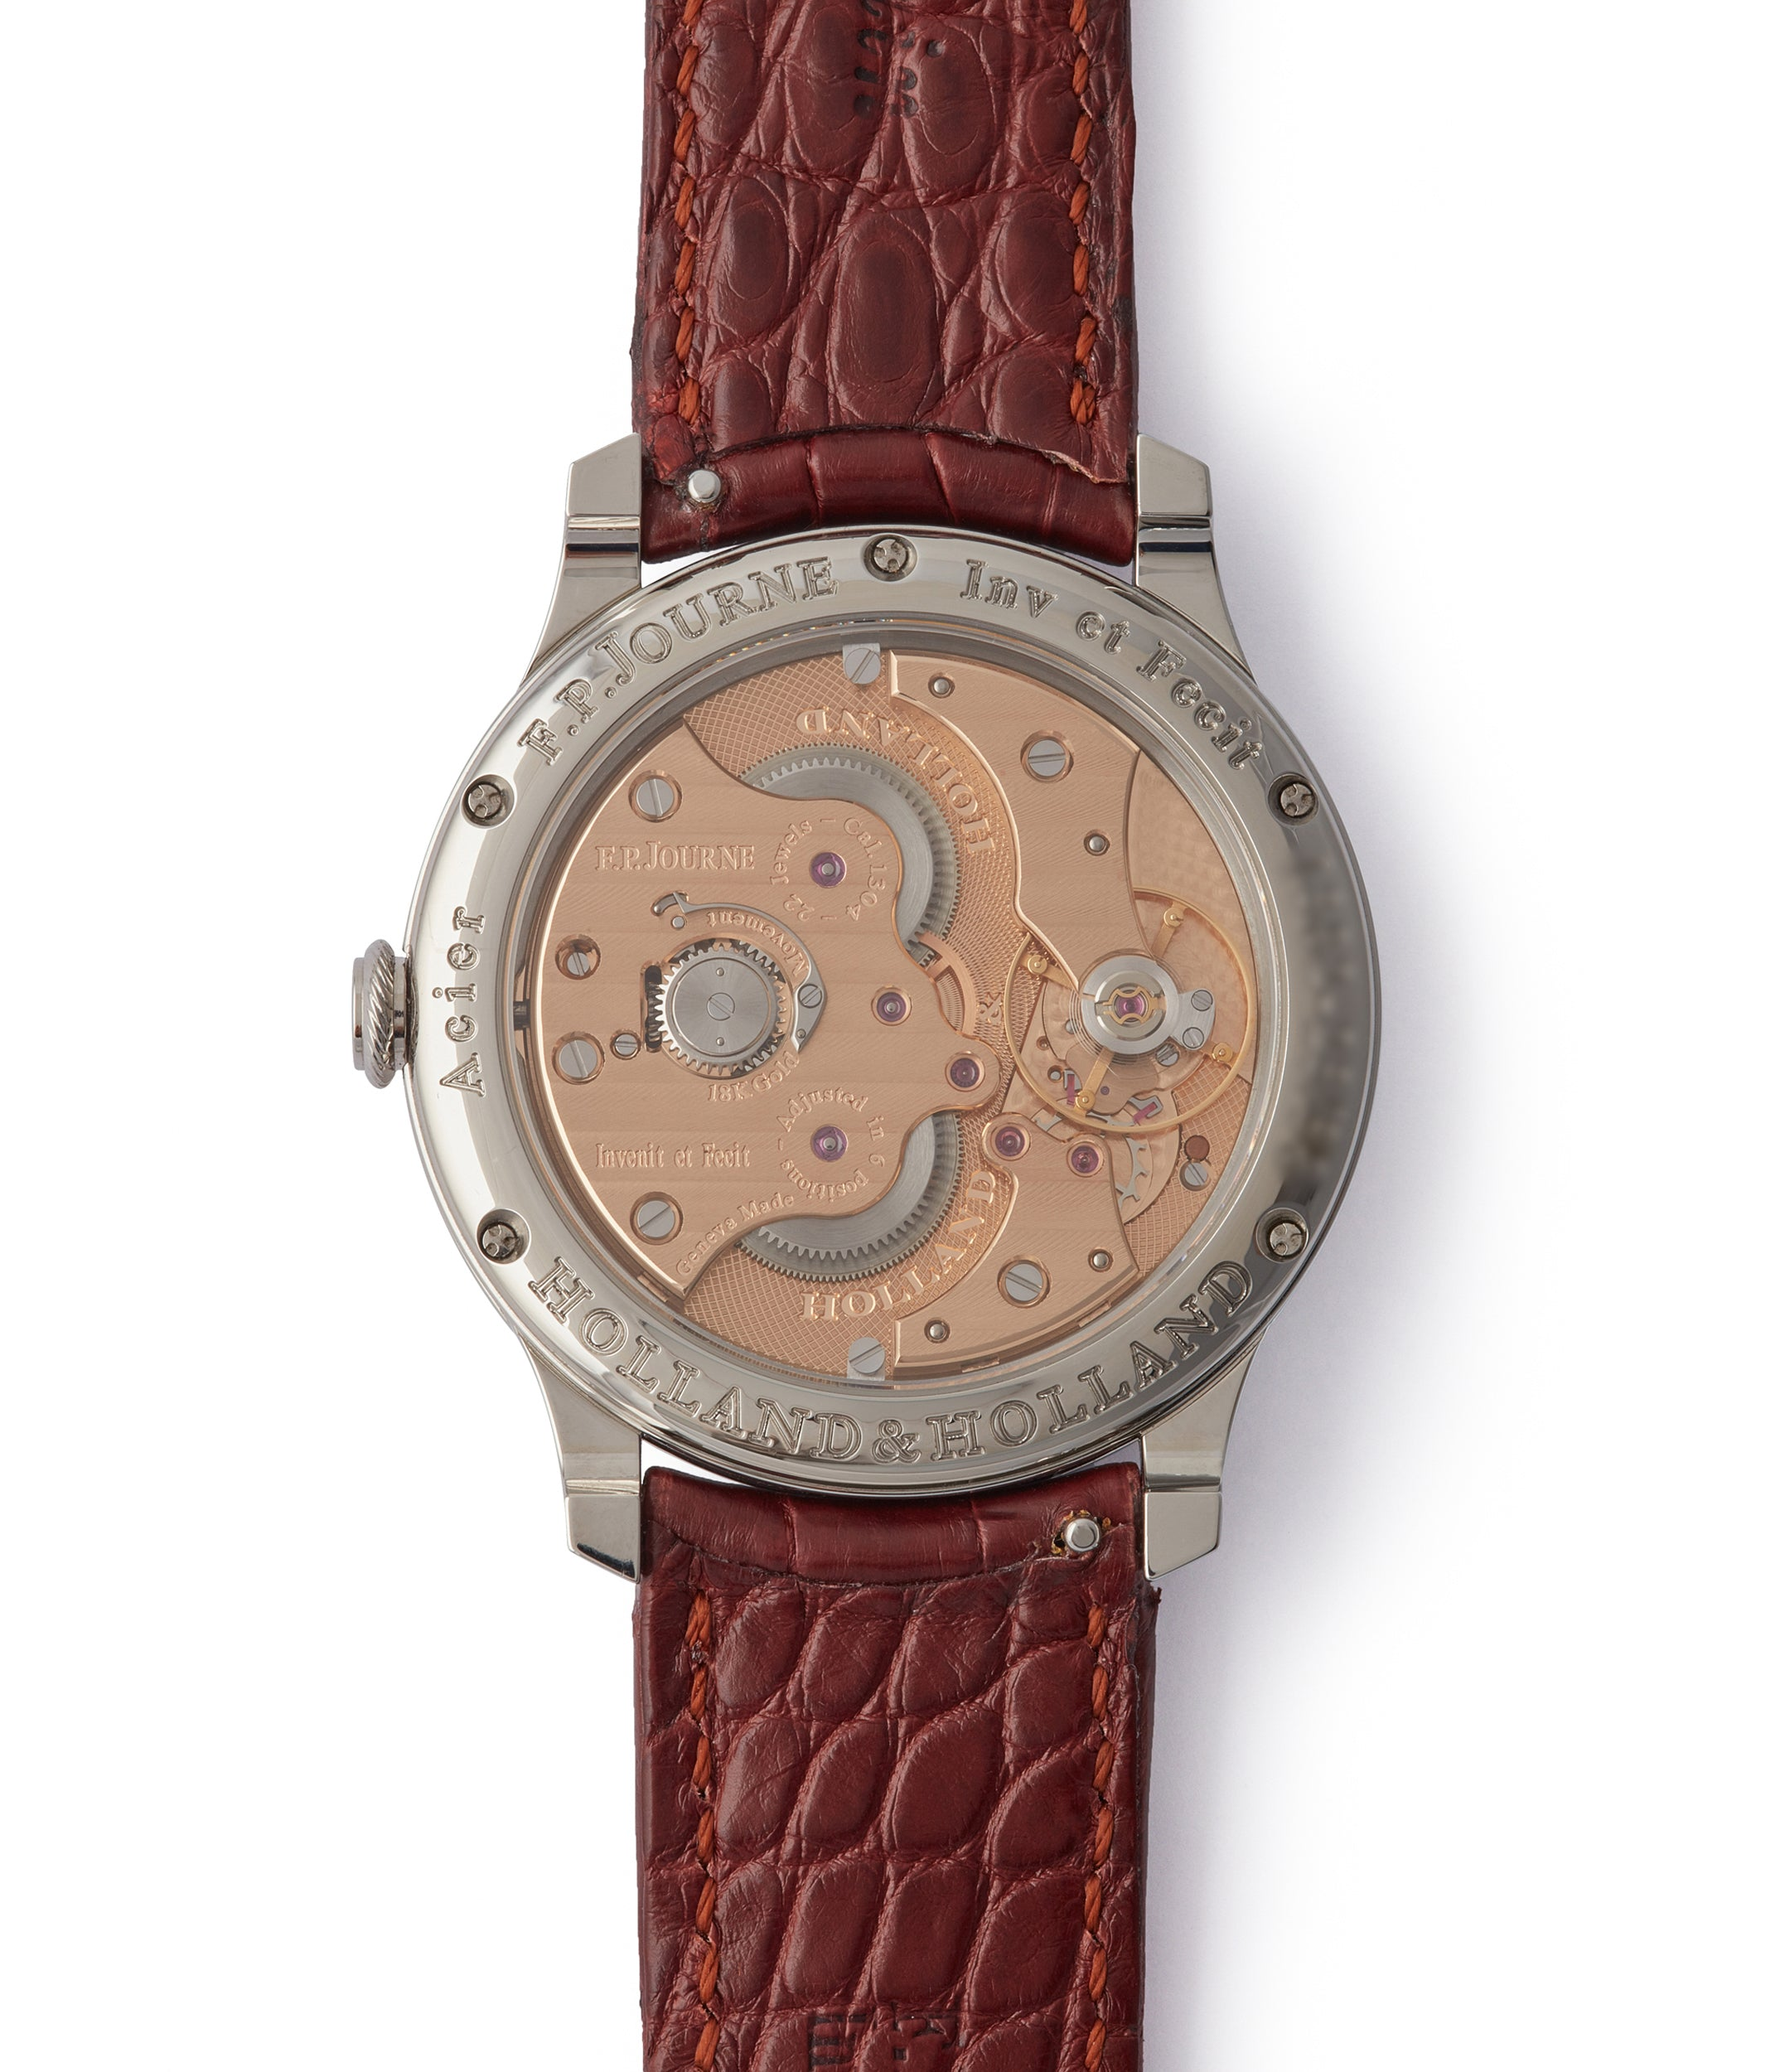 manual-winding F. P. Journe Holland&Holland Chronometre Souverain watch for sale online A Collected Man London specialist independent watchmakers